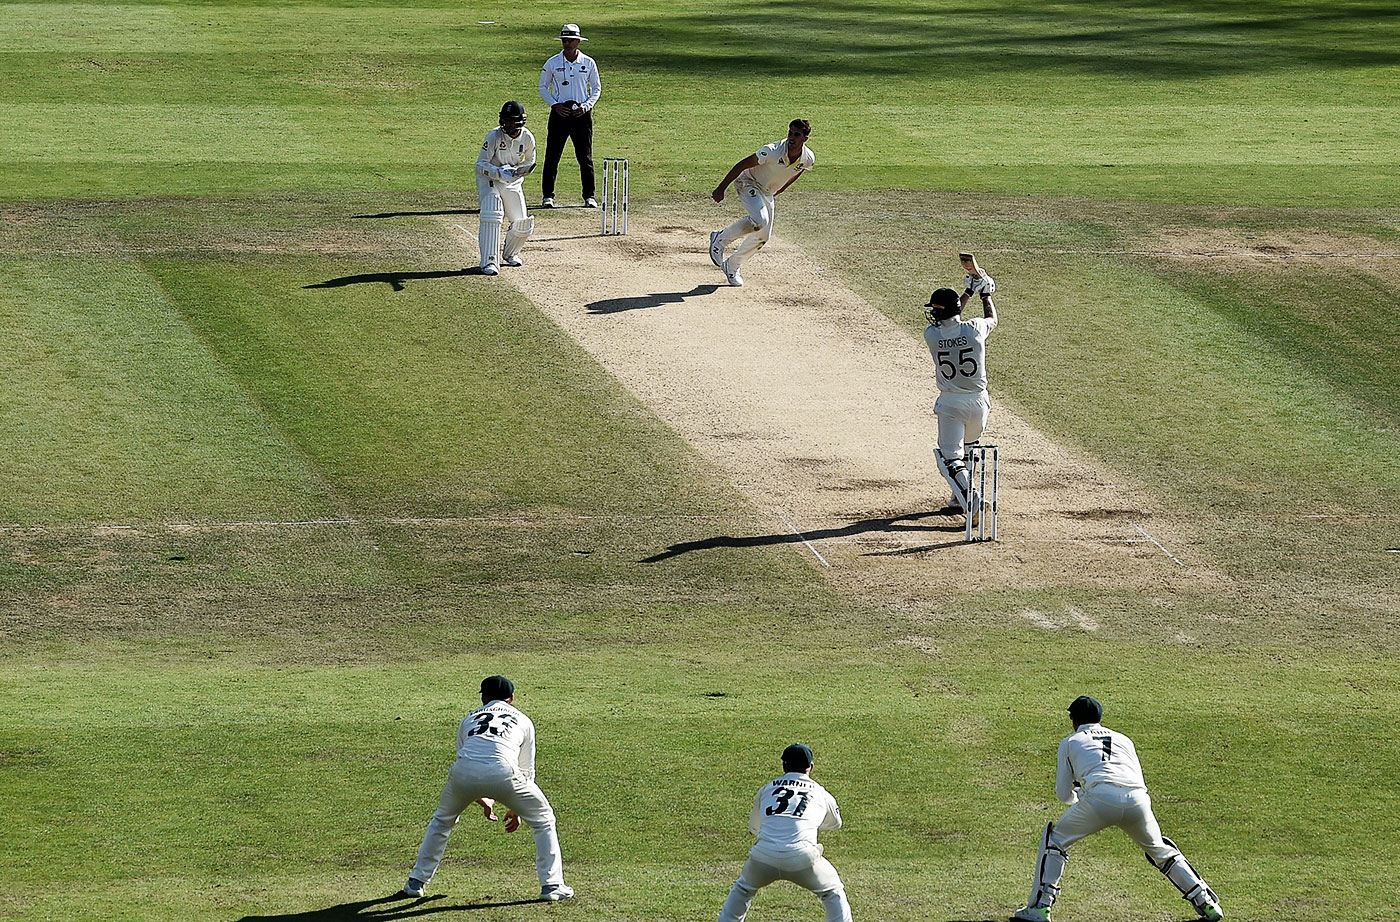 Stokes hits the last of his 11 fours in the innings, bringing up the win